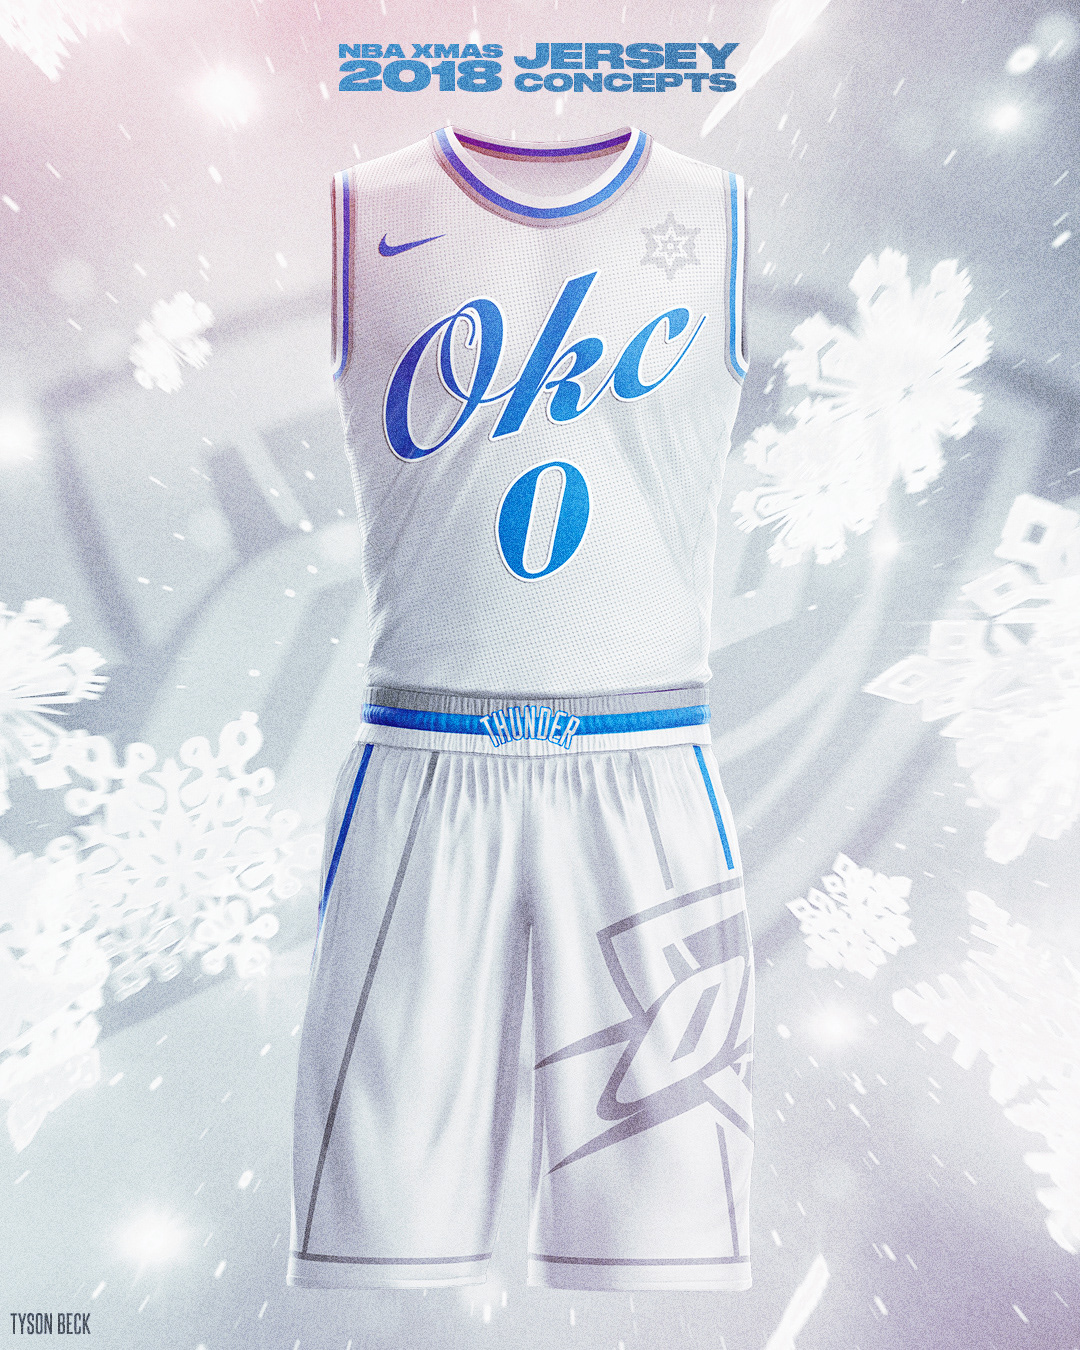 2019 Nba Christmas Jerseys NBA x NIKE 2018 Christmas Day   Jersey Concepts on Behance